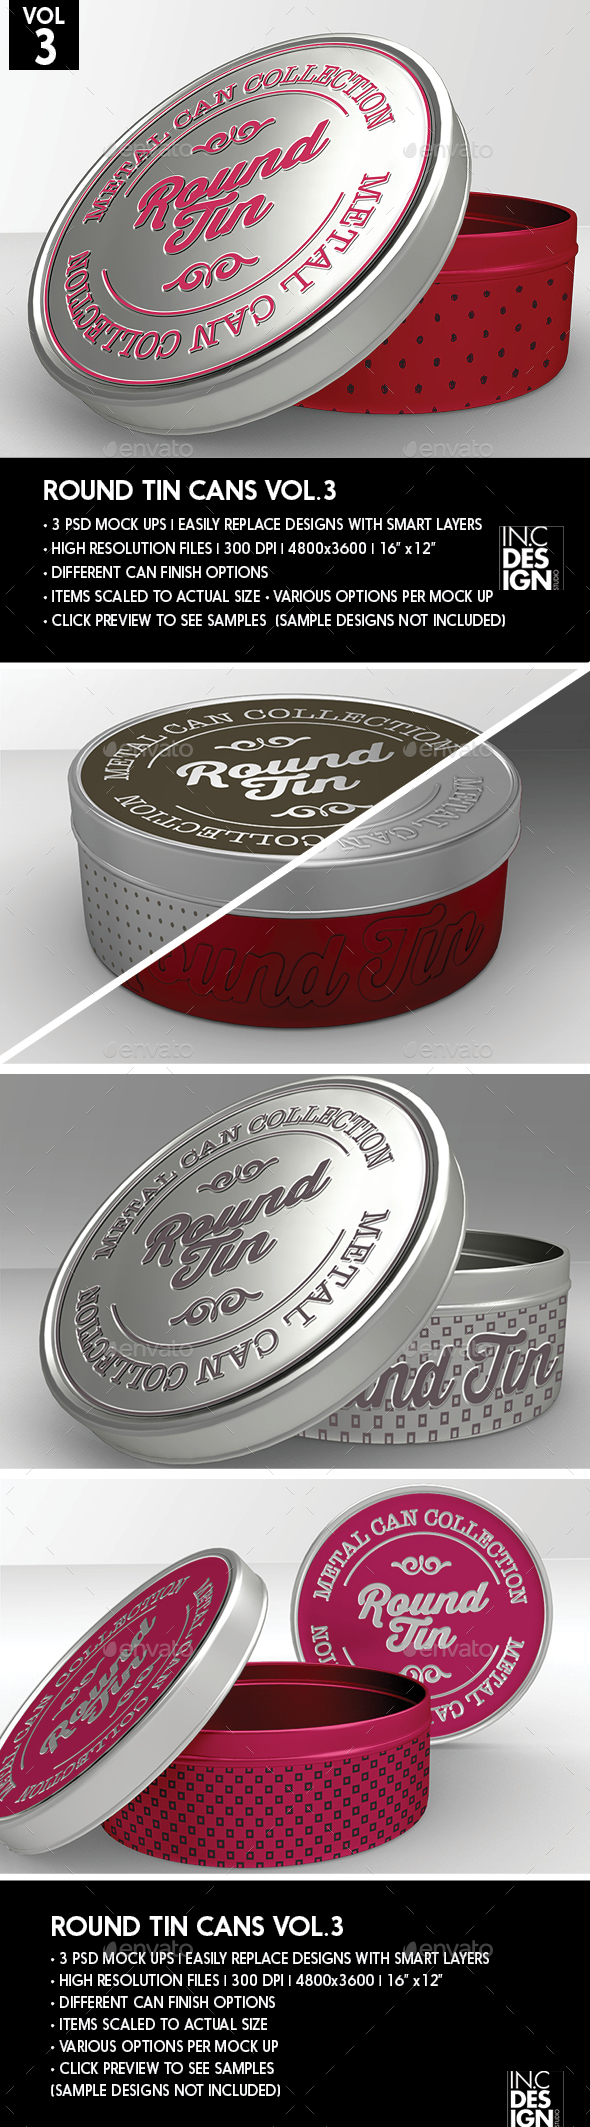 Round Tin Cans Vol.3 Packaging Mock Ups